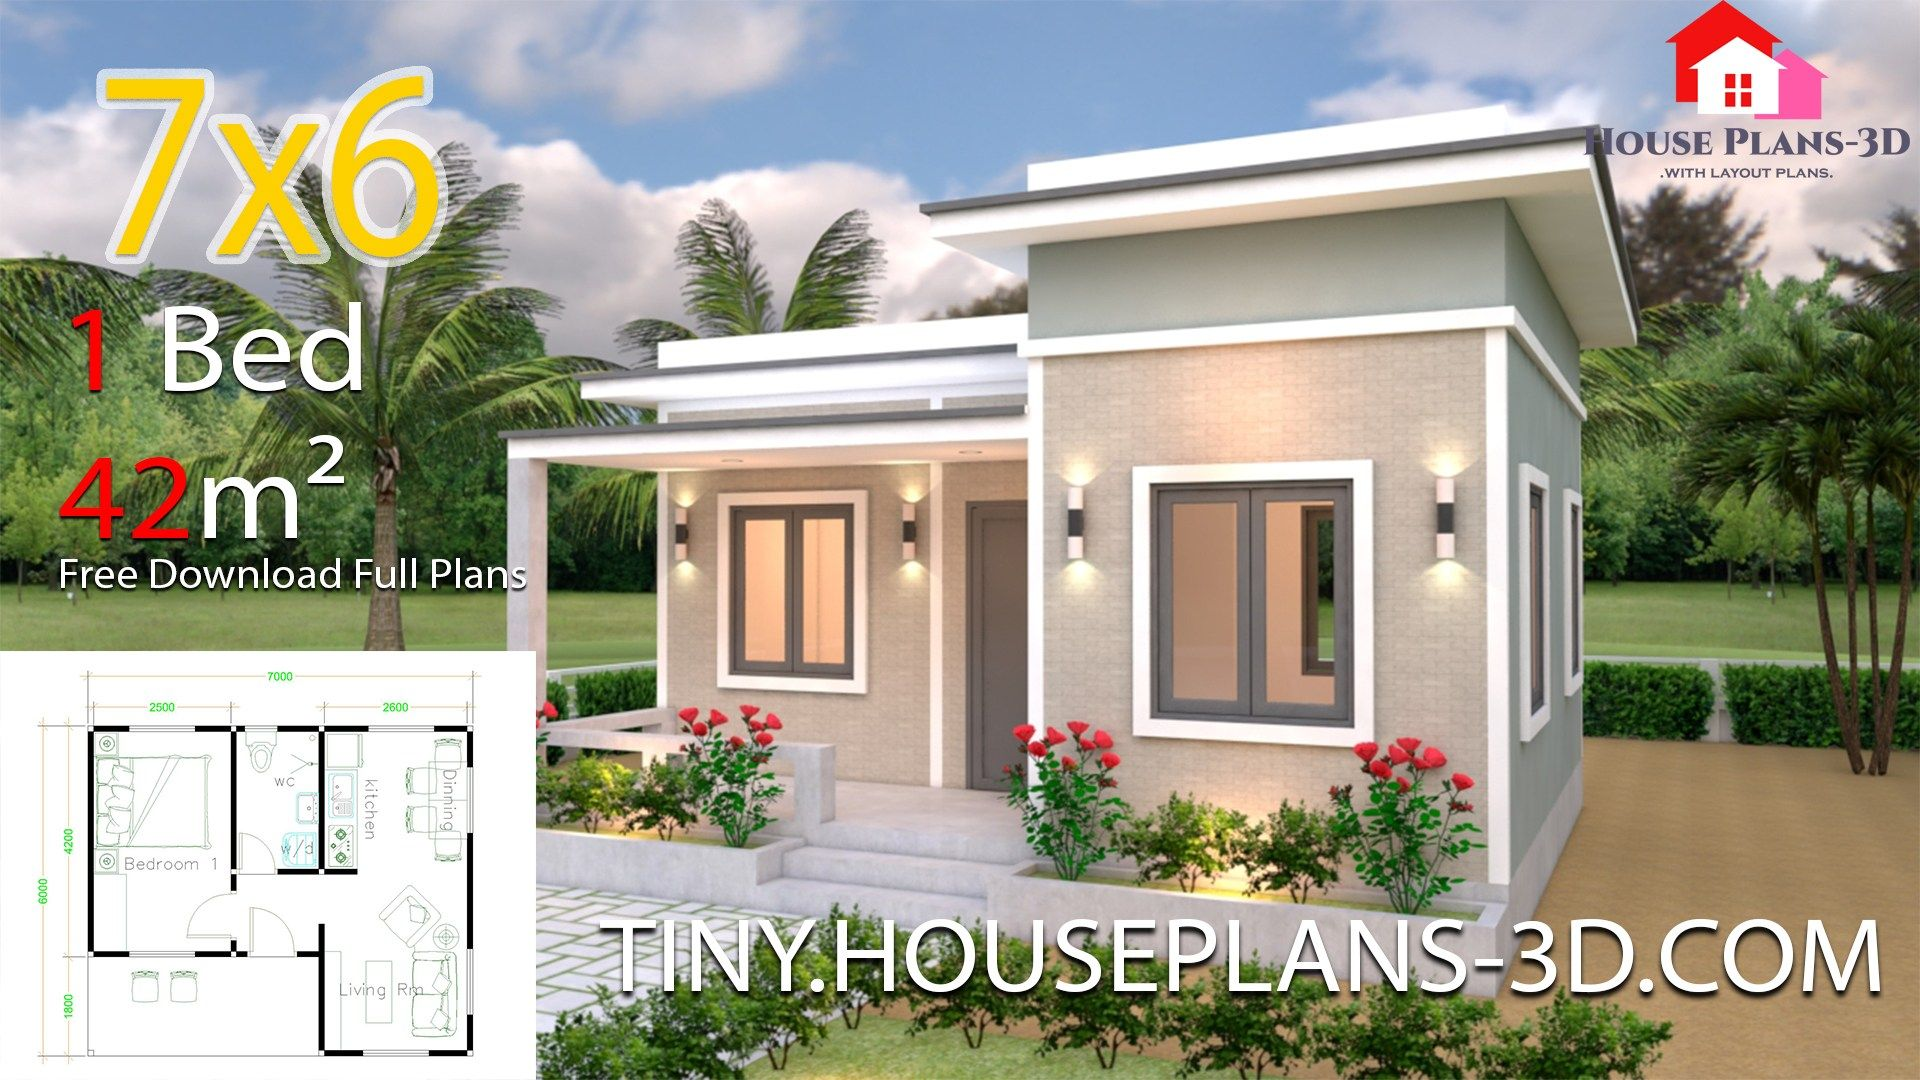 Tiny House Plans 7x6 With One Bedroom Flat Roofthe House Has Car Parking And Garden Living Small House Design Plans One Bedroom House Plans One Bedroom House